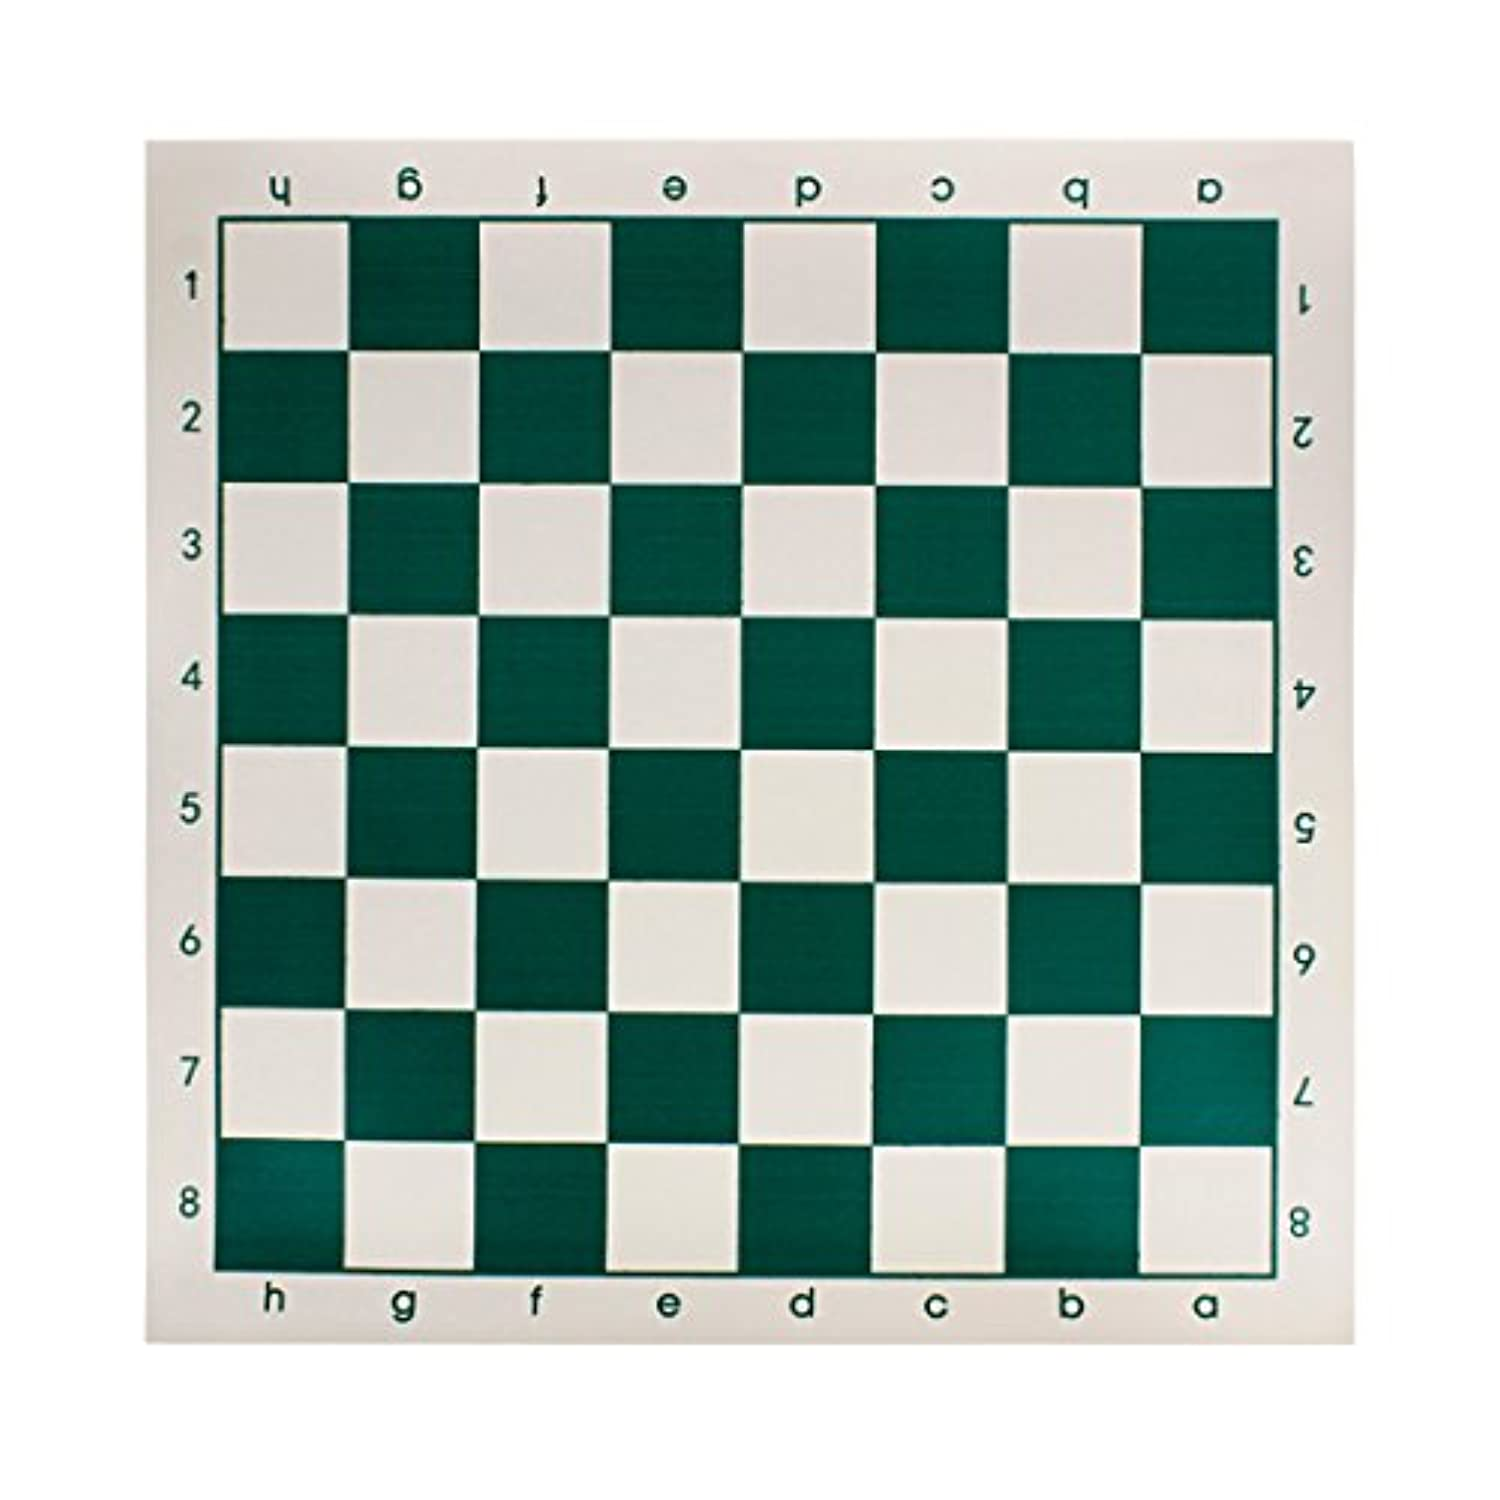 Andux Chess Board Tournament Chess Set-Standard Vinyl Roll-up Forest Green/XQQP-01